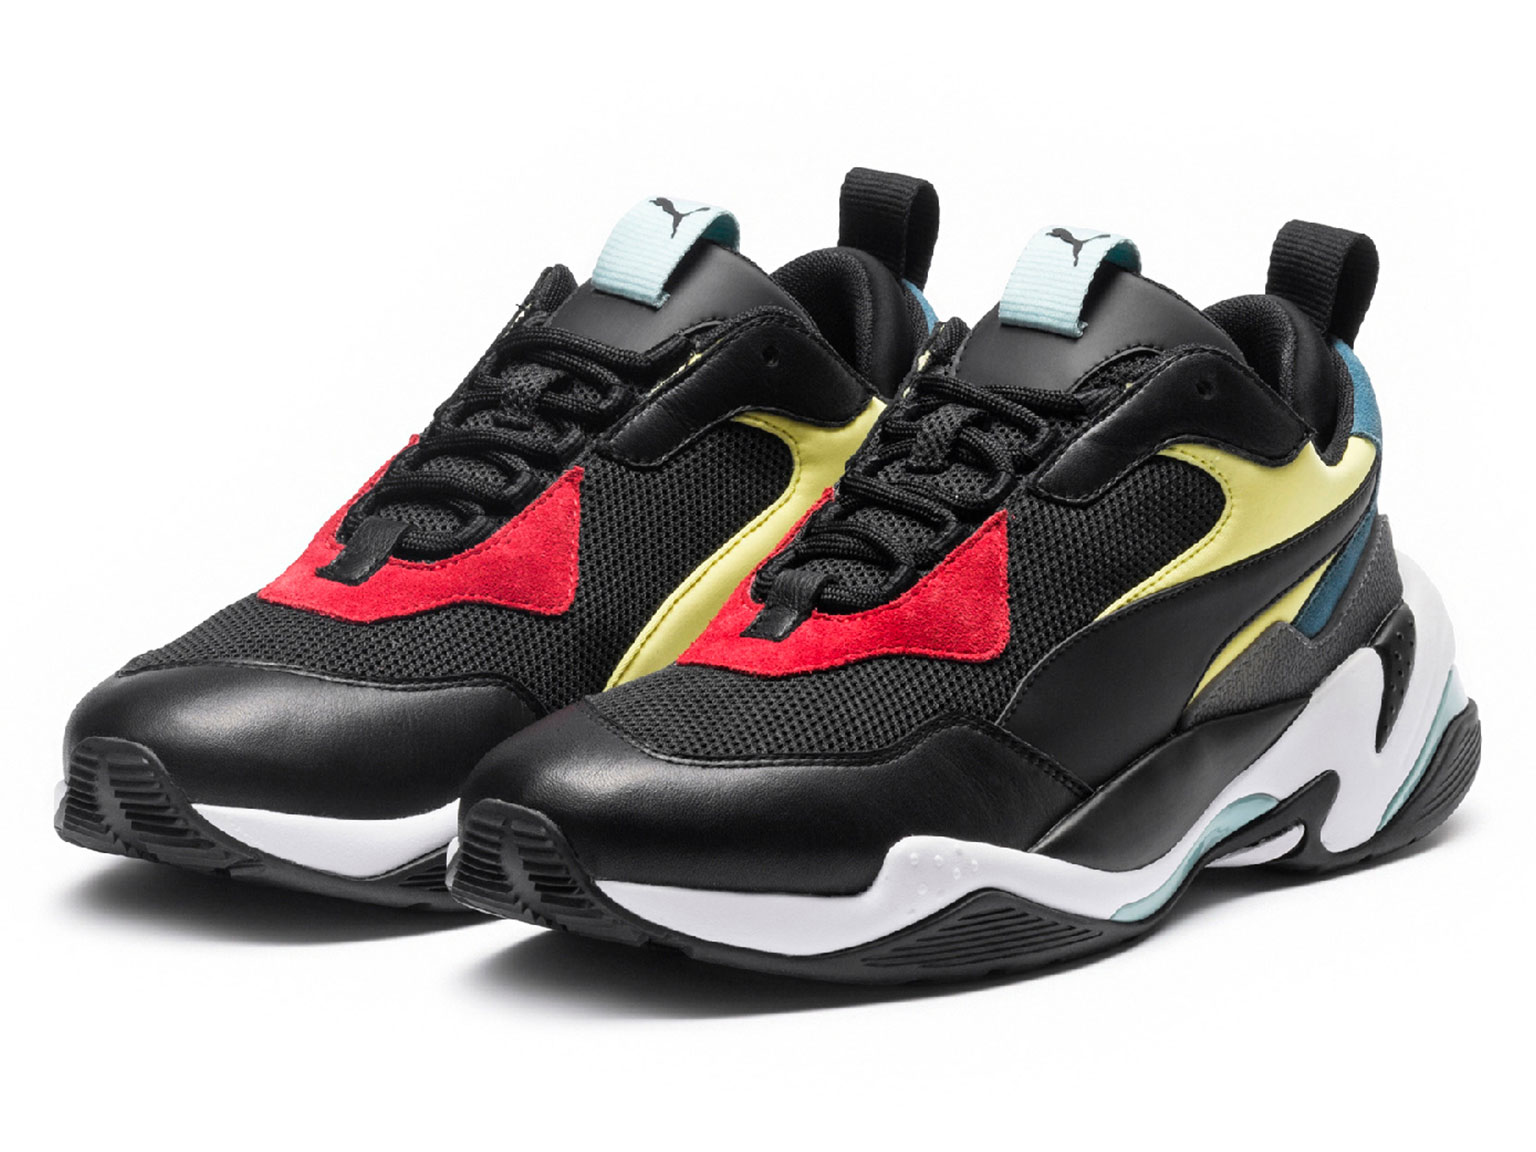 puma thunder spectra for sale